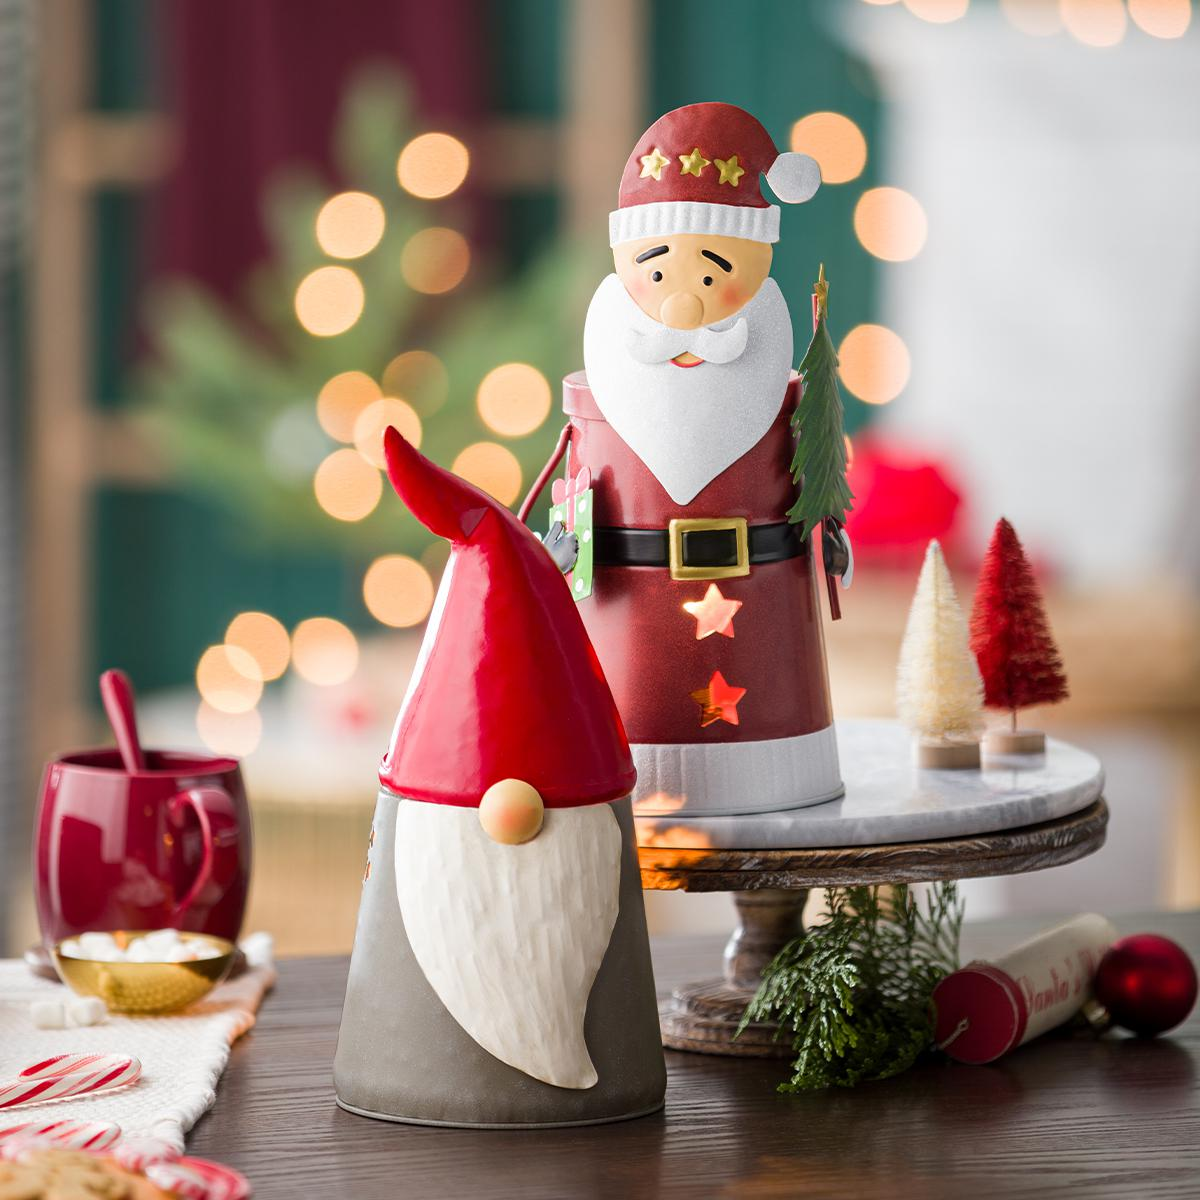 Scentsy Holiday Products 2021